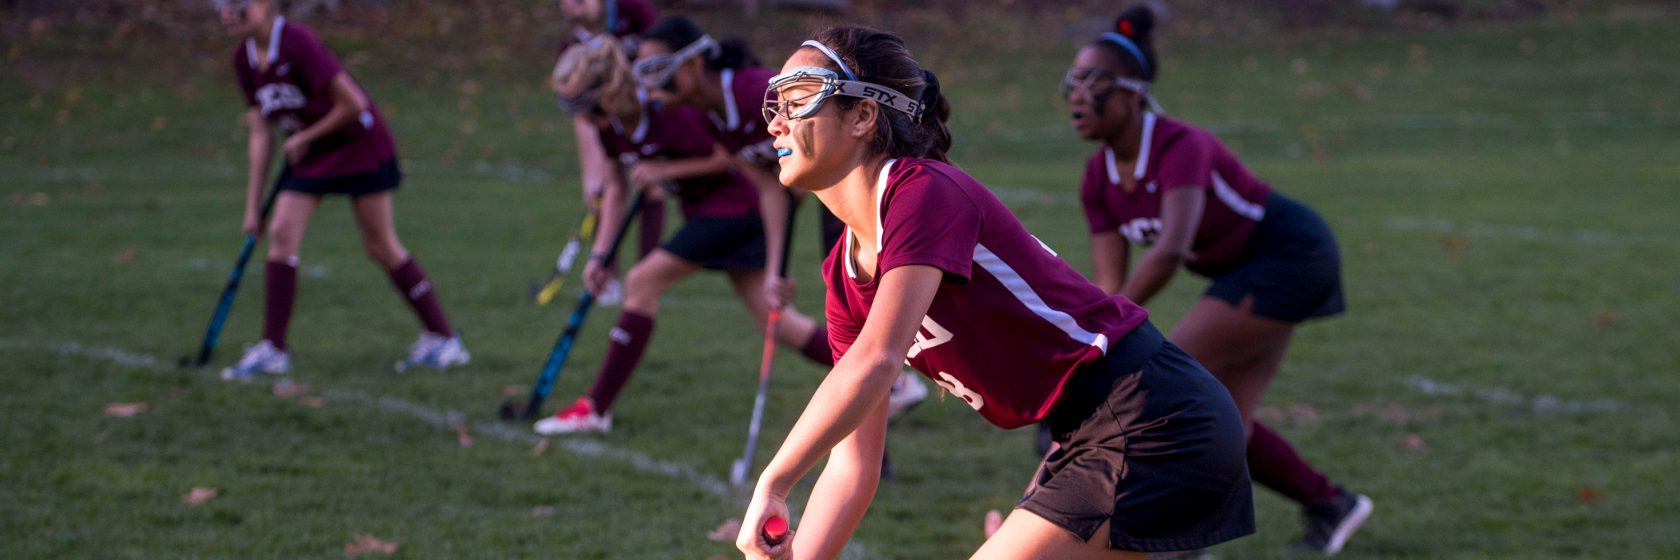 A student playing field hockey.